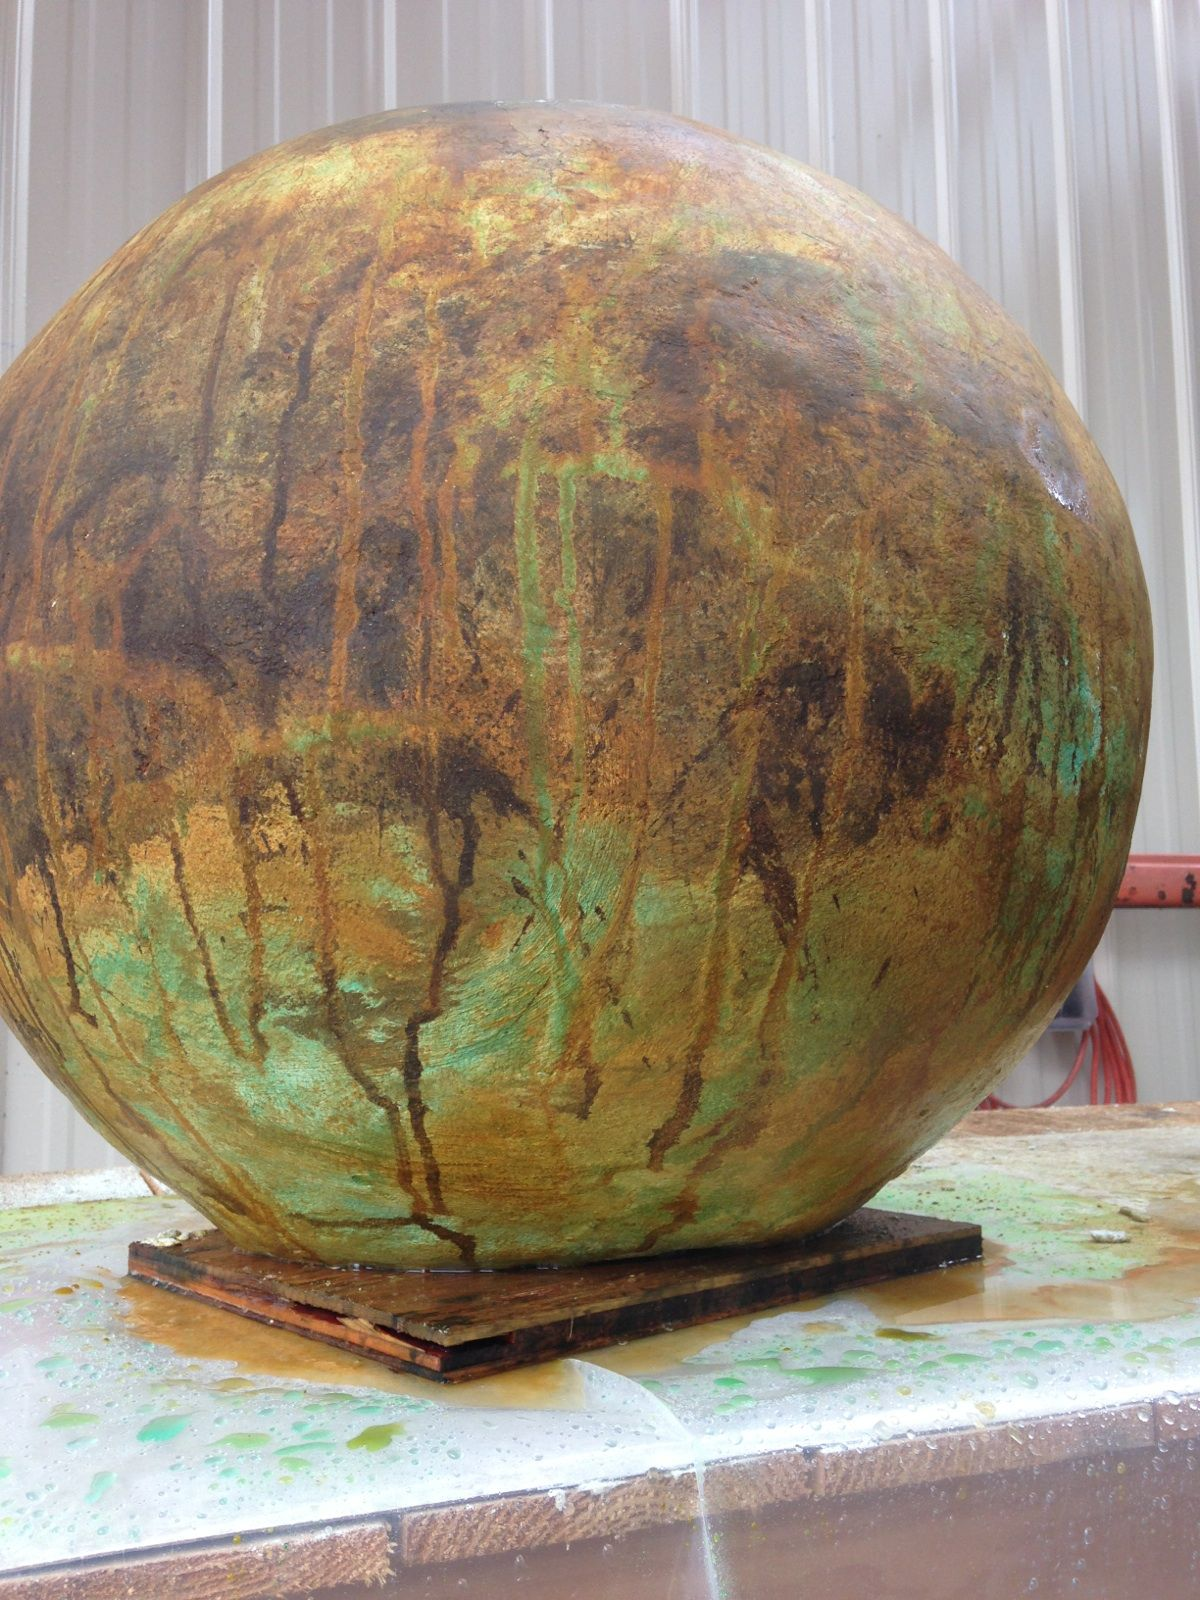 24 Concrete Ball 1 2 Thick Made Over A Yoga Ball I Will Post